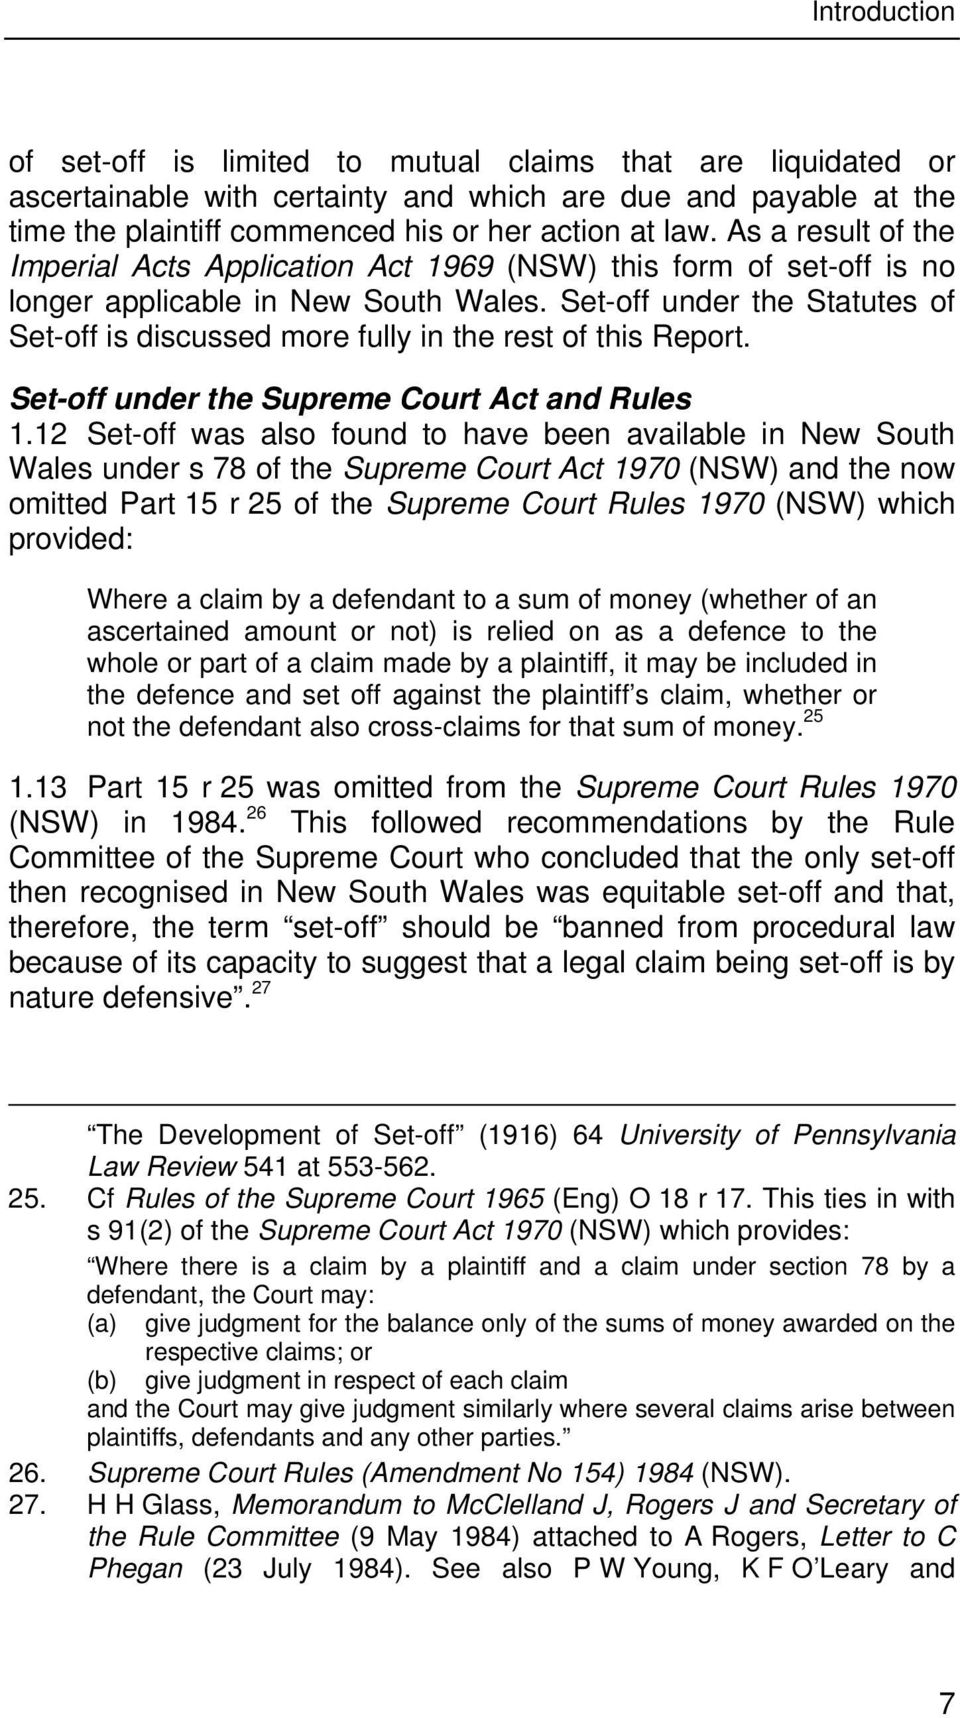 Set-off under the Statutes of Set-off is discussed more fully in the rest of this Report. Set-off under the Supreme Court Act and Rules 1.